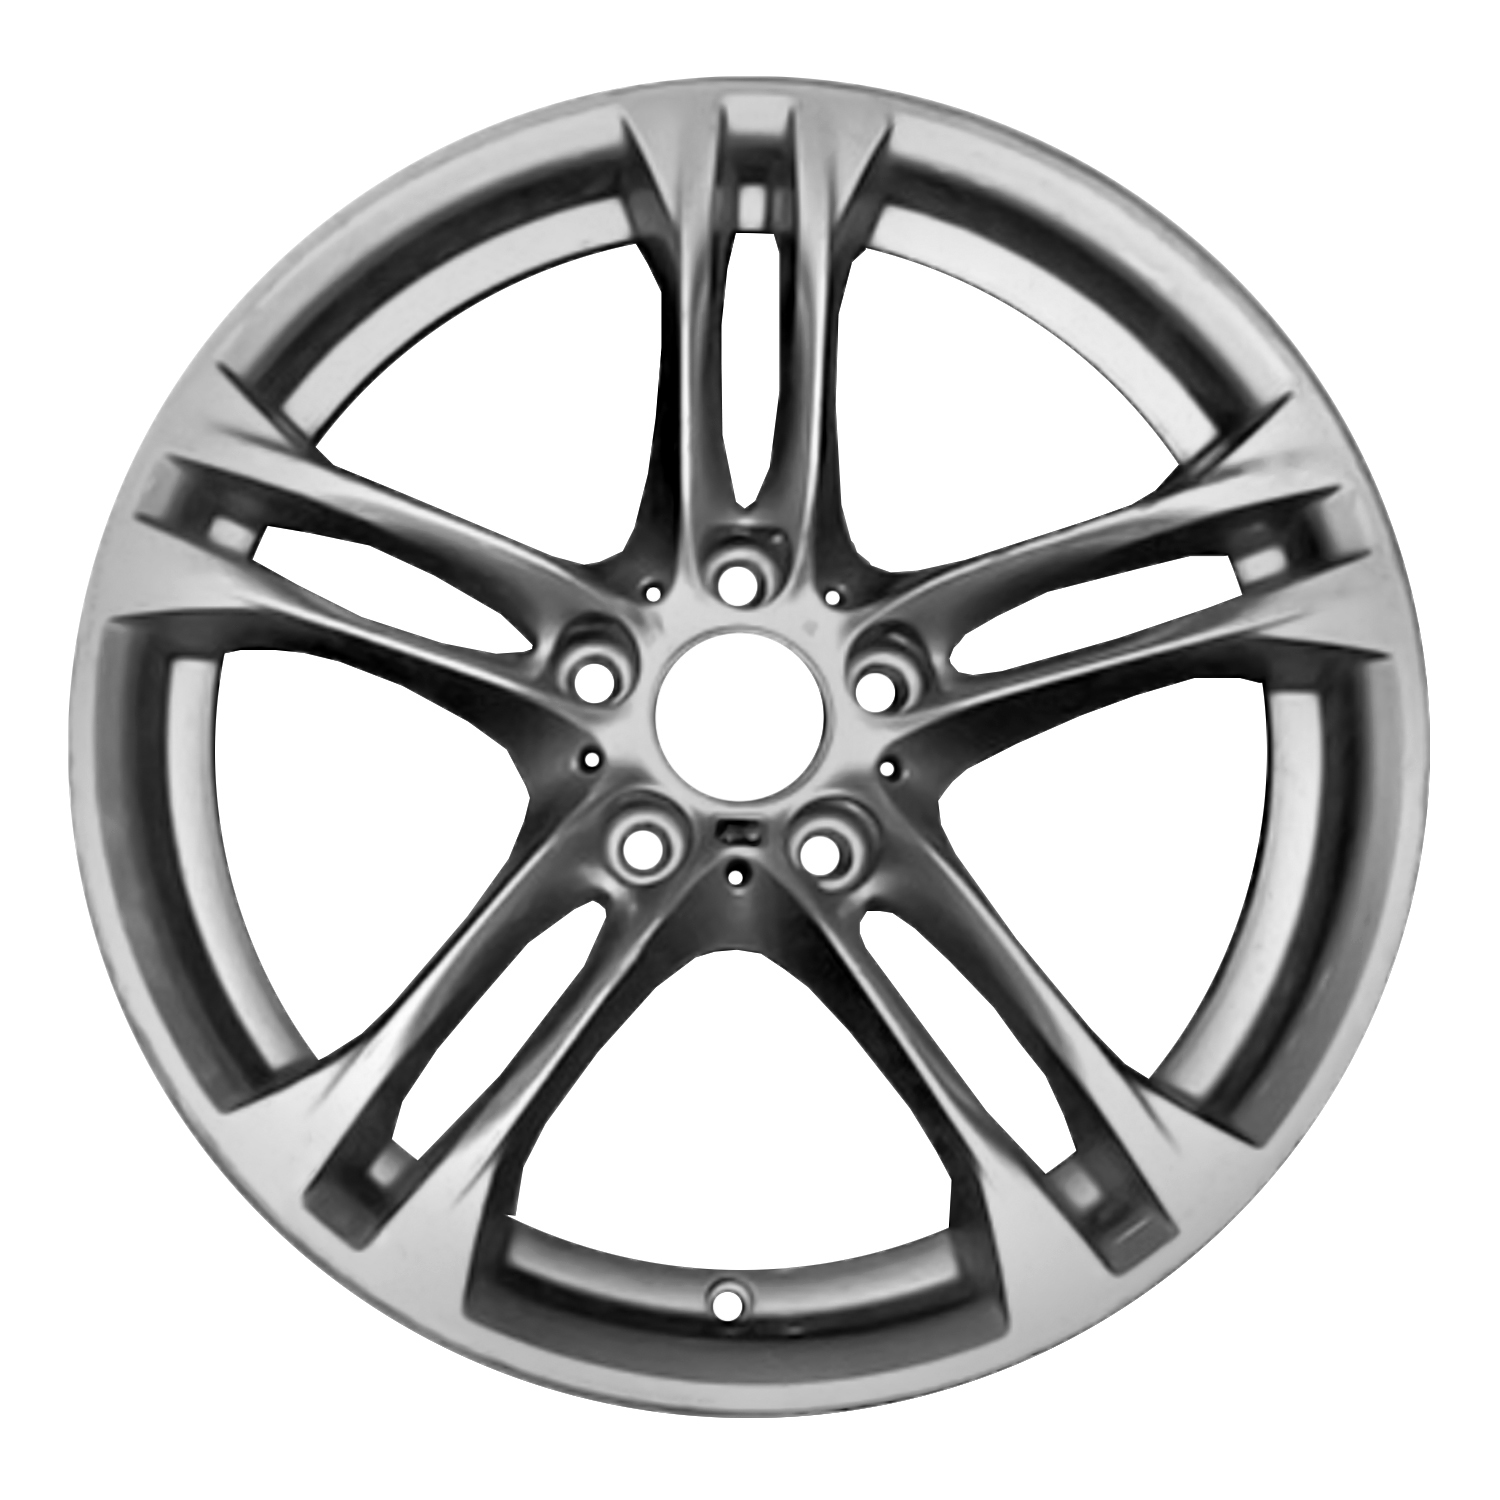 Compatible Reconditioned Front 18 X 8 5 Double Spokes Bright